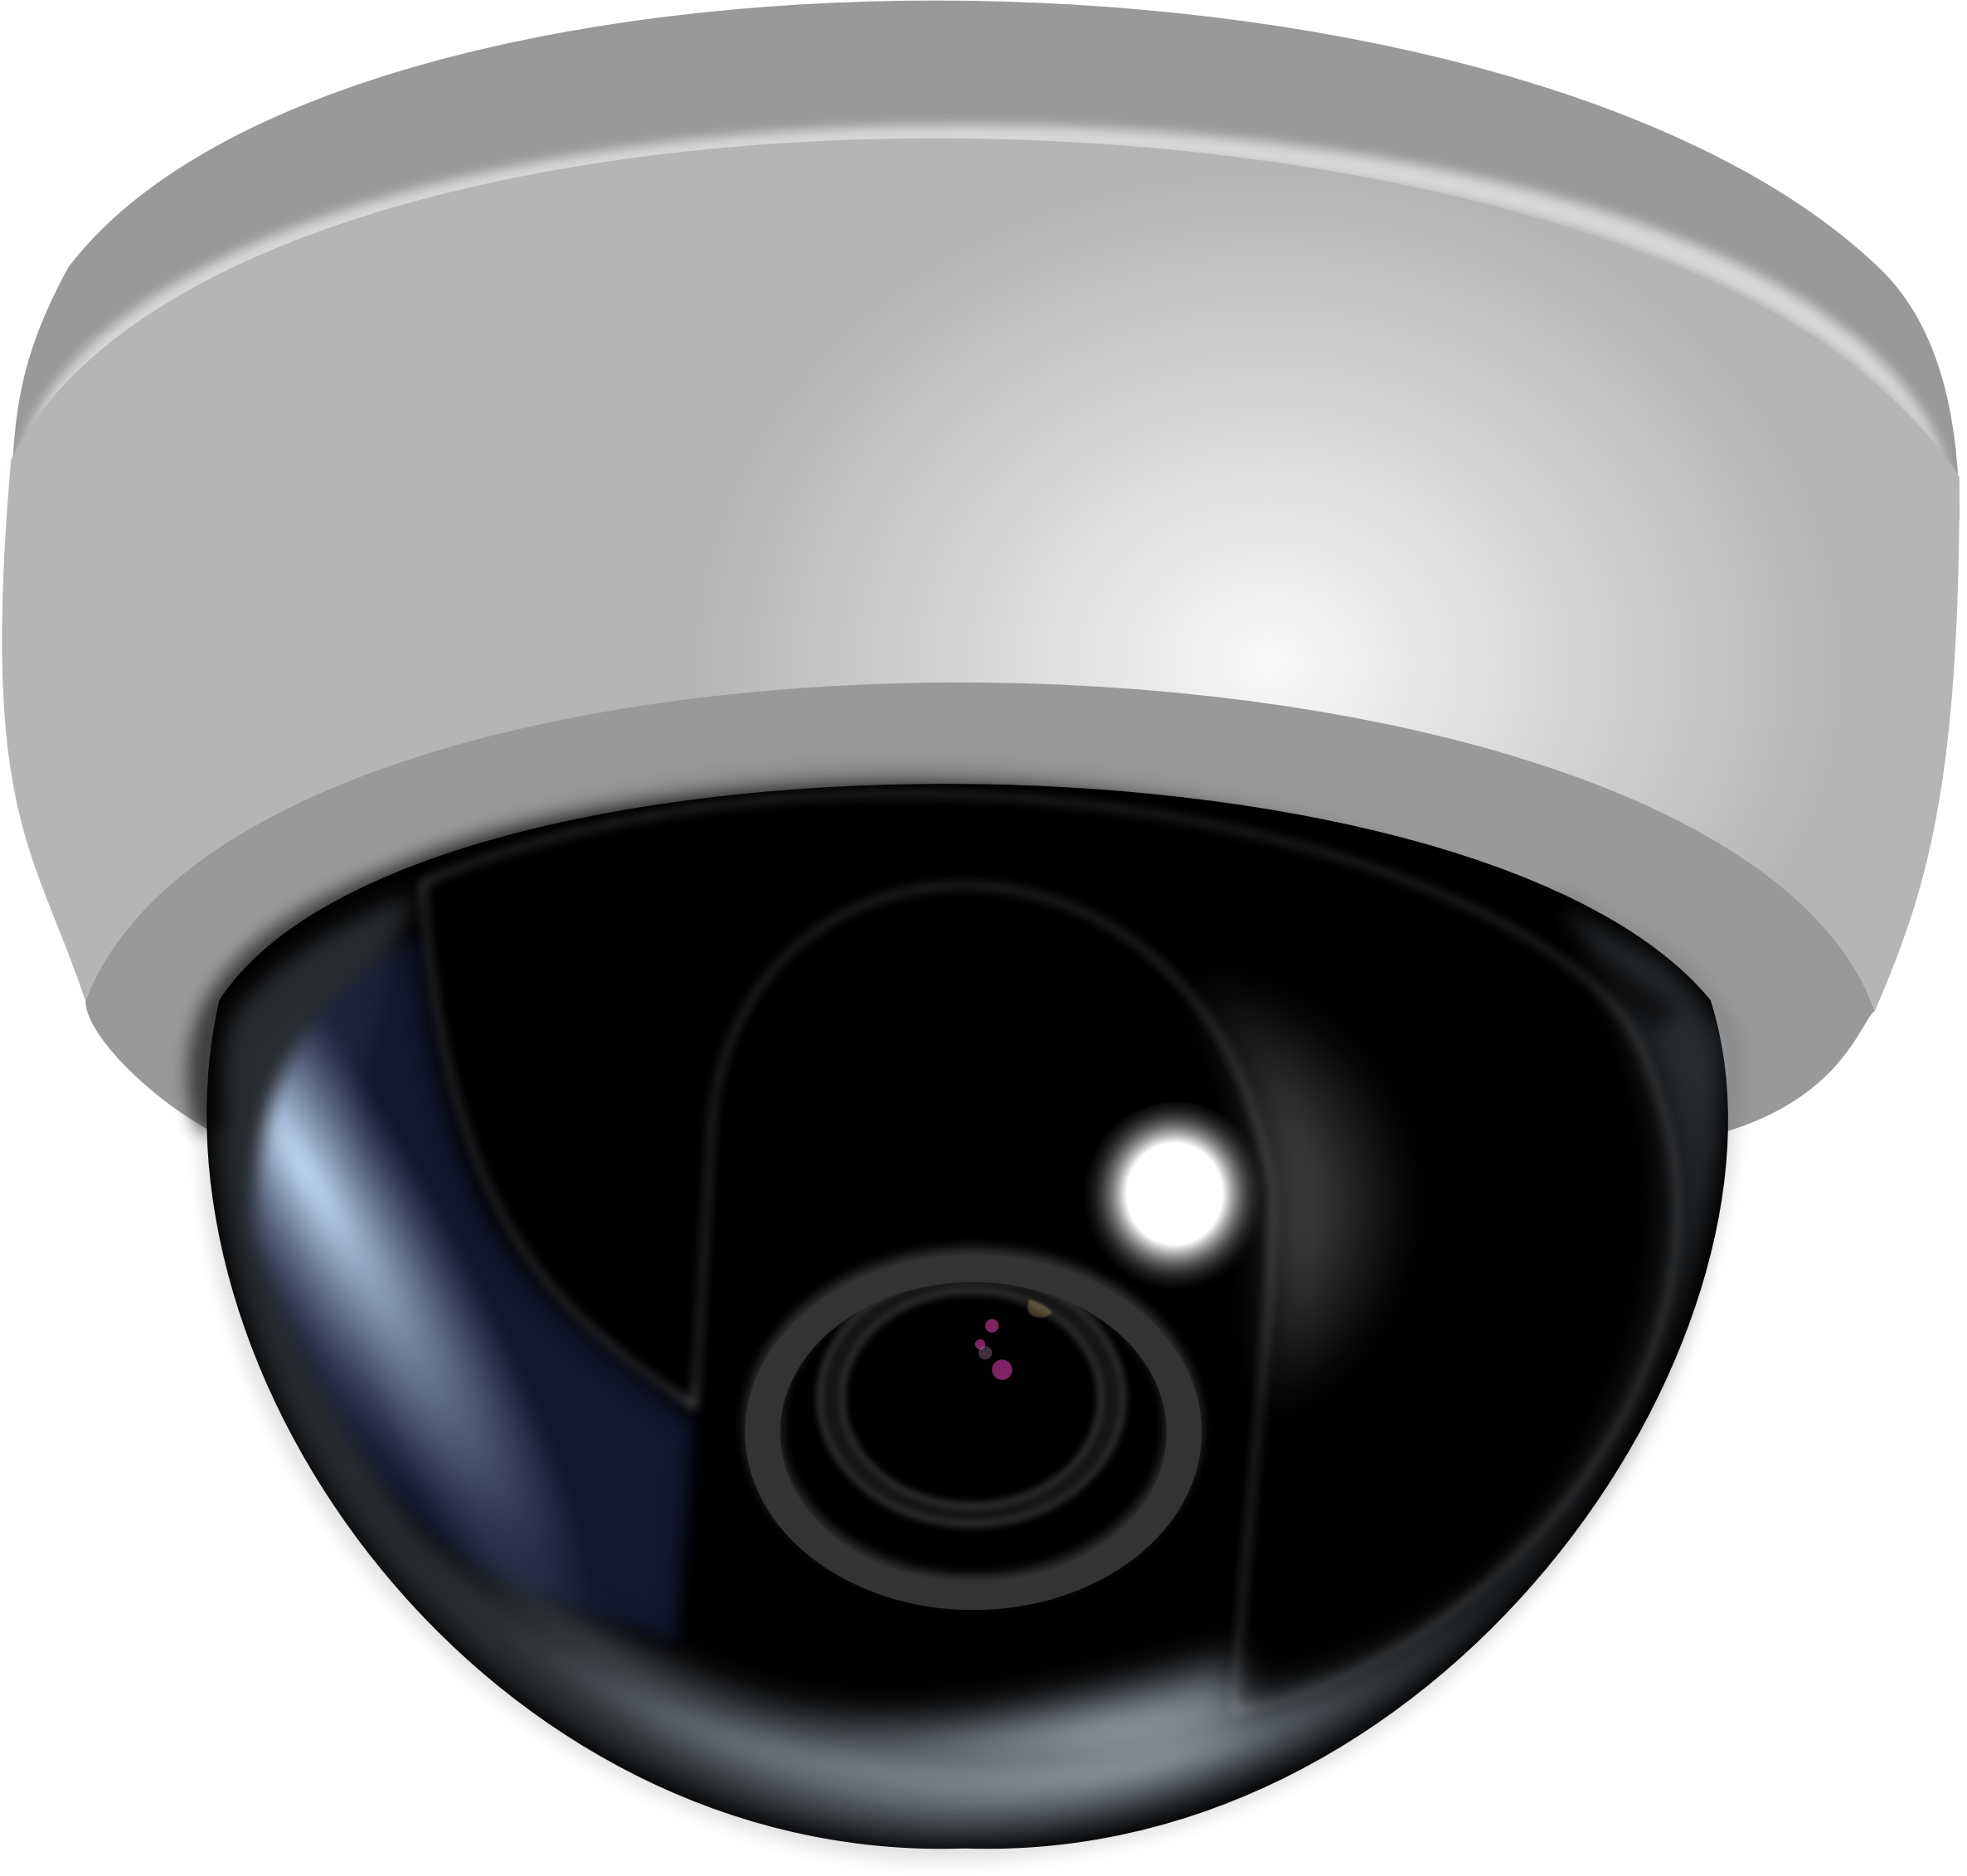 CCTV Dome Camera by mi_brami